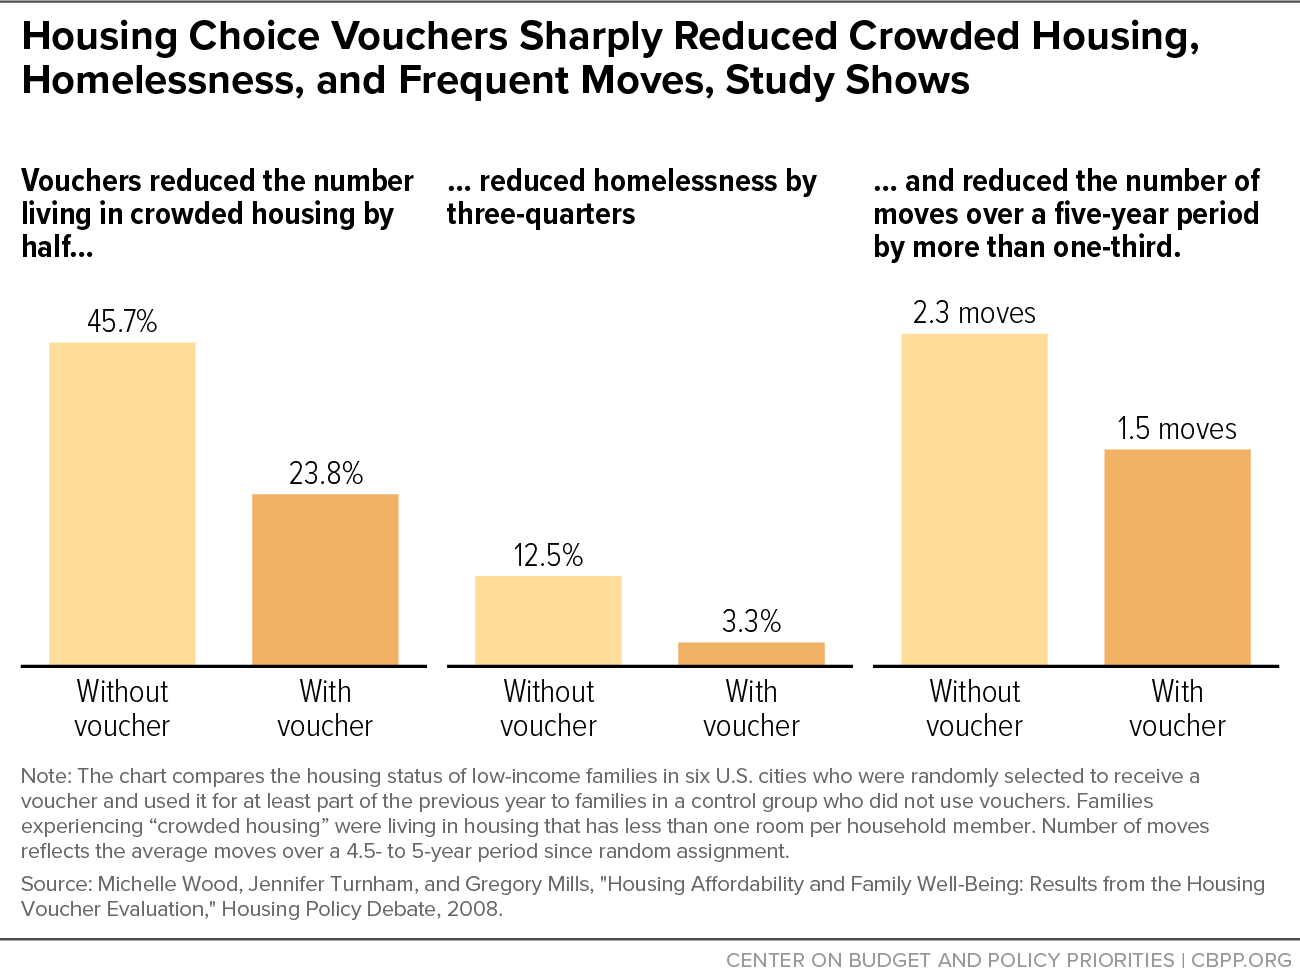 Housing Choice Vouchers Sharply Reduced Crowded Housing, Homelessness, and Frequent Moves, Study Shows